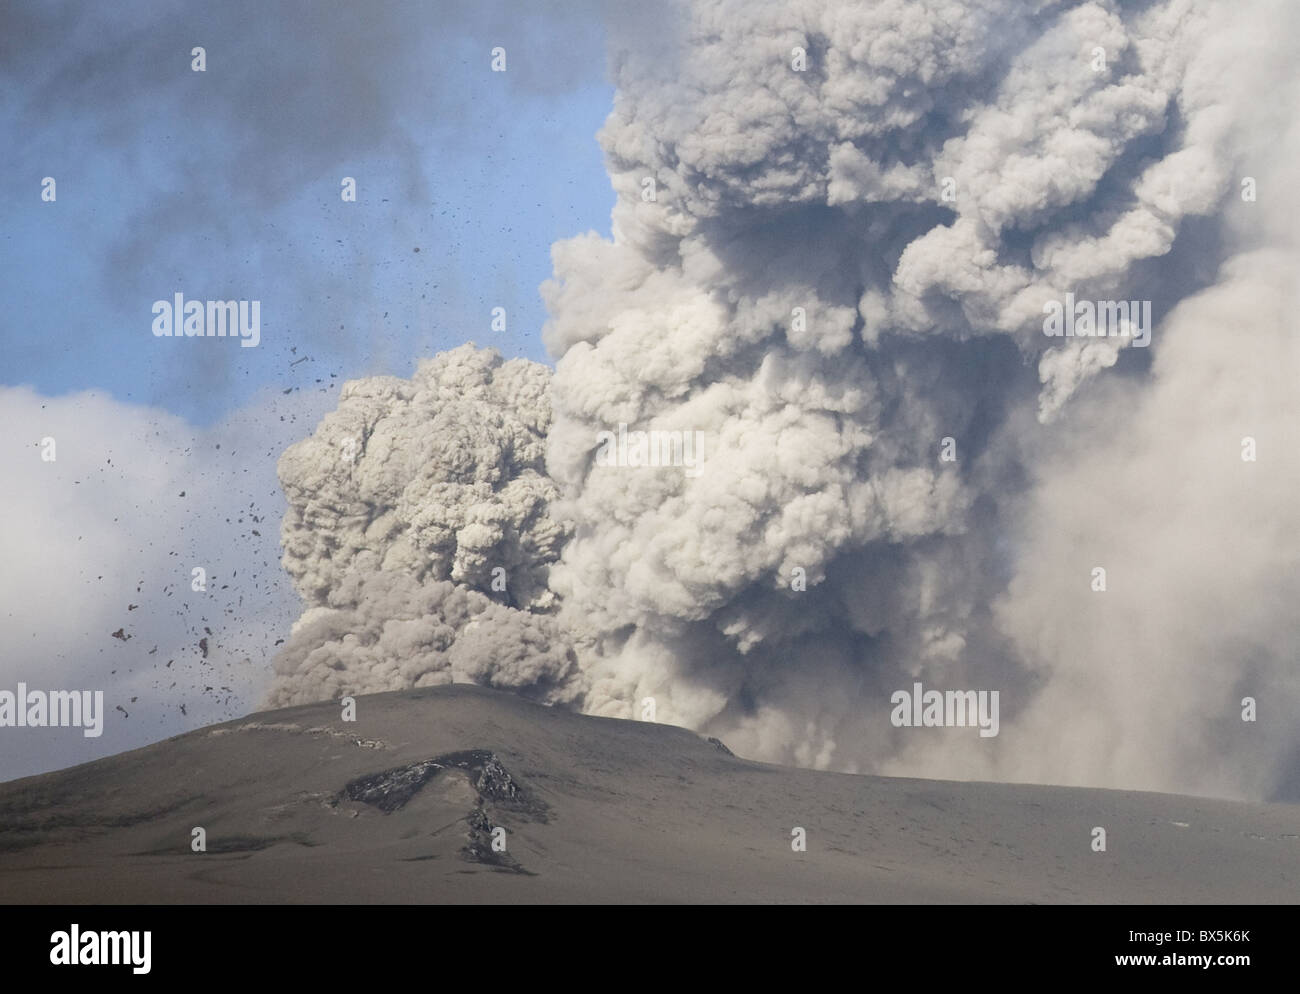 Eyjafjallajokull eruption showing billowing ash plume and rocks exploding into the sky of southern Iceland, Iceland - Stock Image